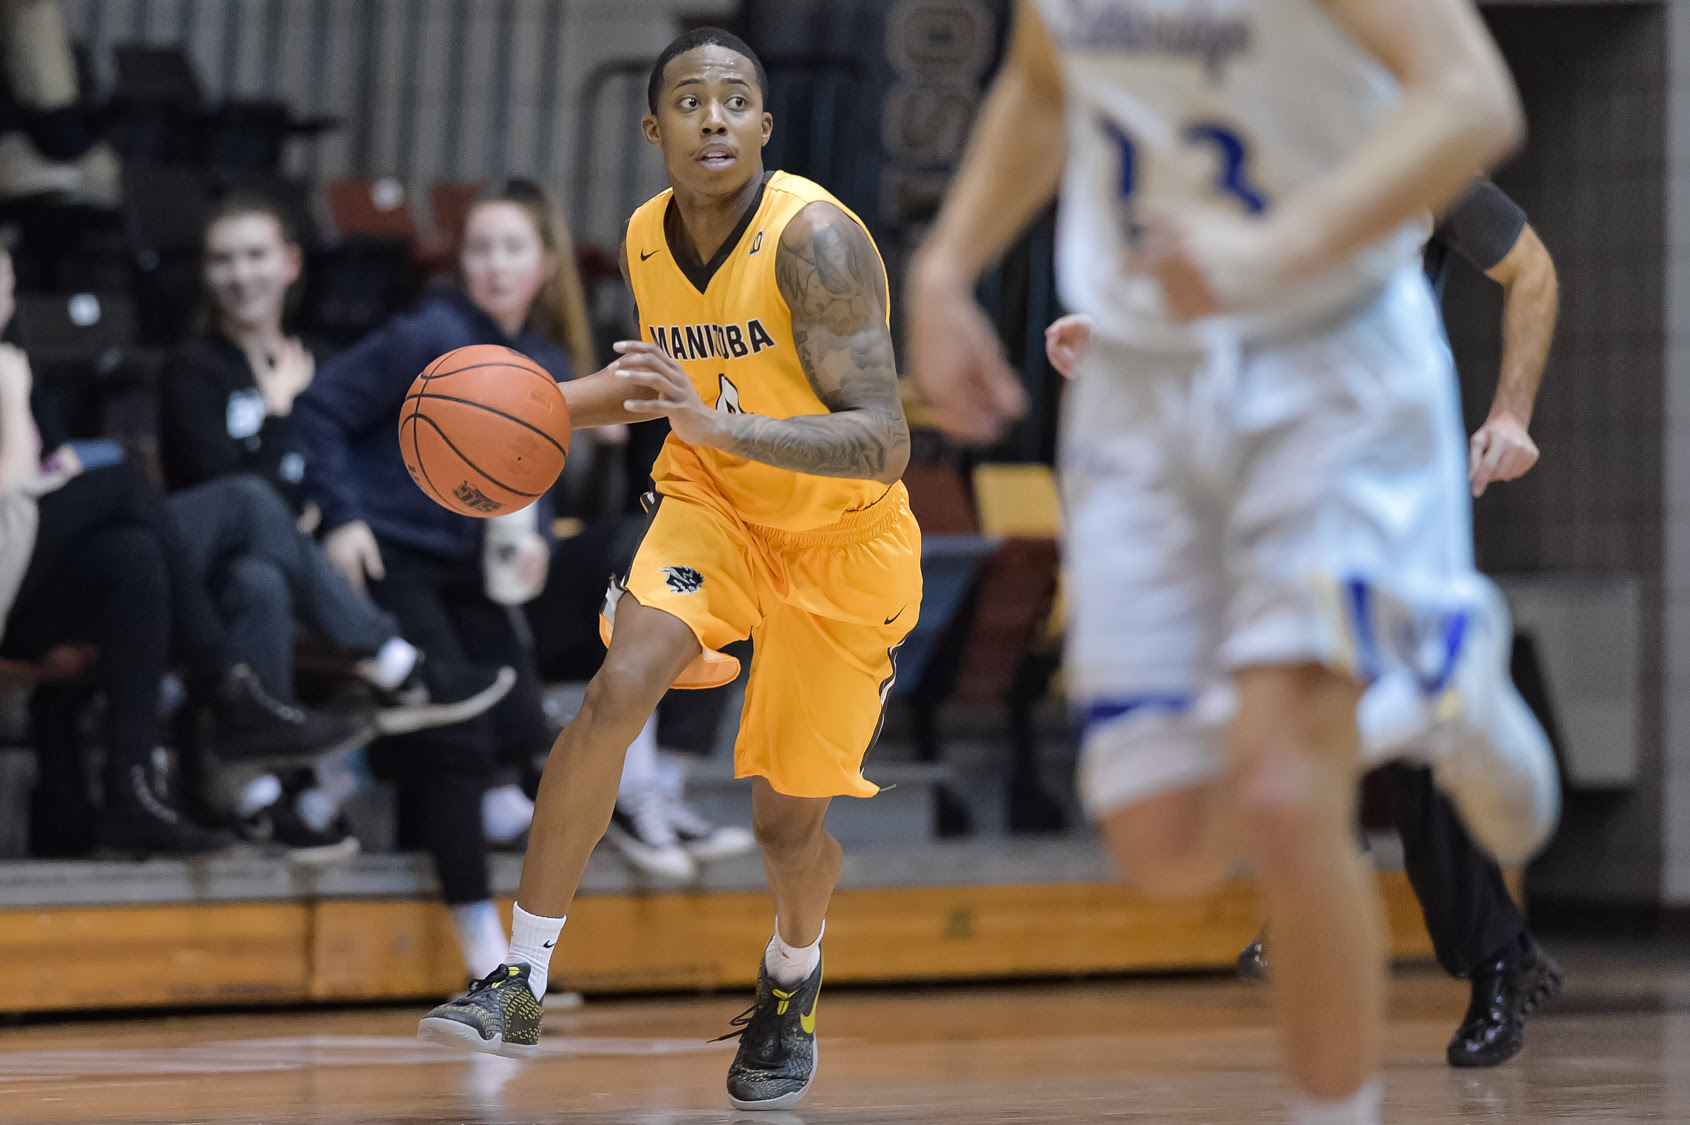 Bison Rashawn Browne captured Canada West conference men's basketball assist title with 6.8 assists per game and becomes second Bison to accomplish this feat in conference regular season